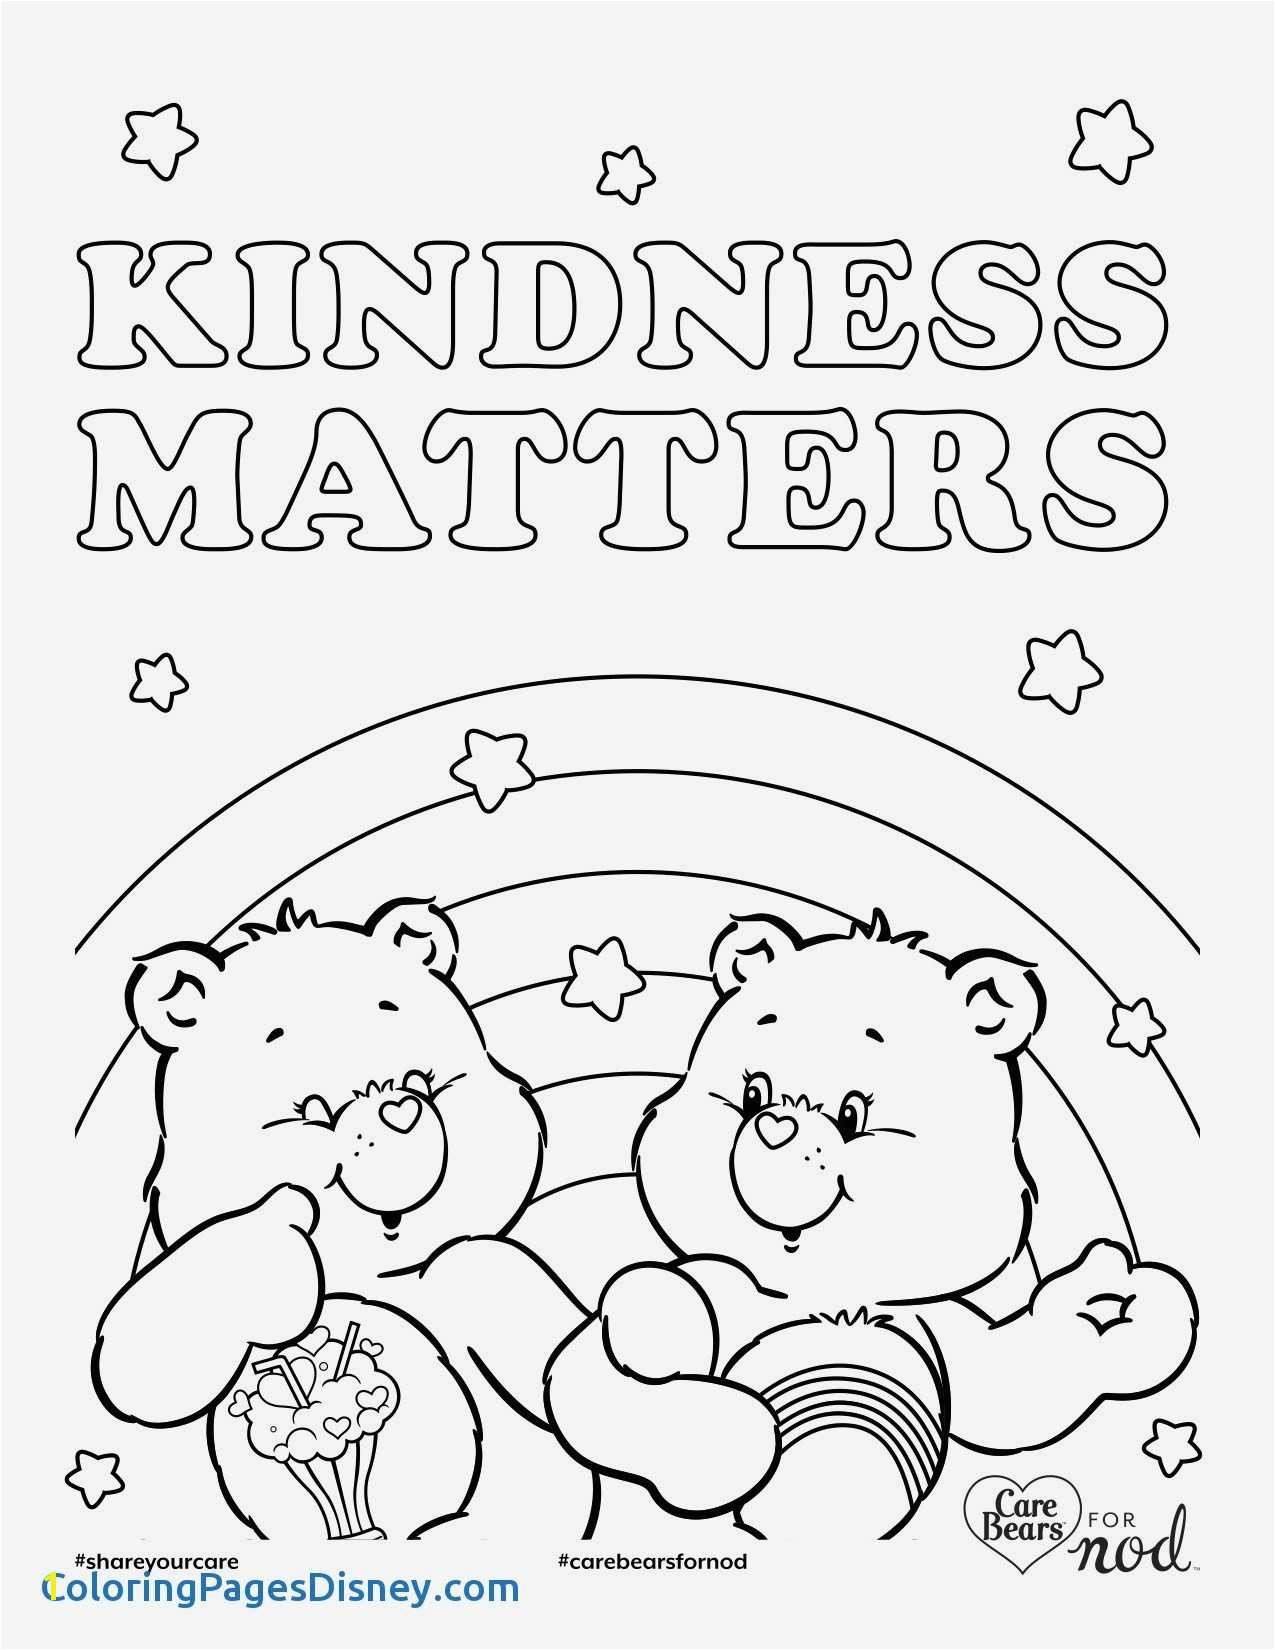 Print Out Coloring Pages Printable Coloring Book Disney Luxury Fitnesscoloring Pages 0d